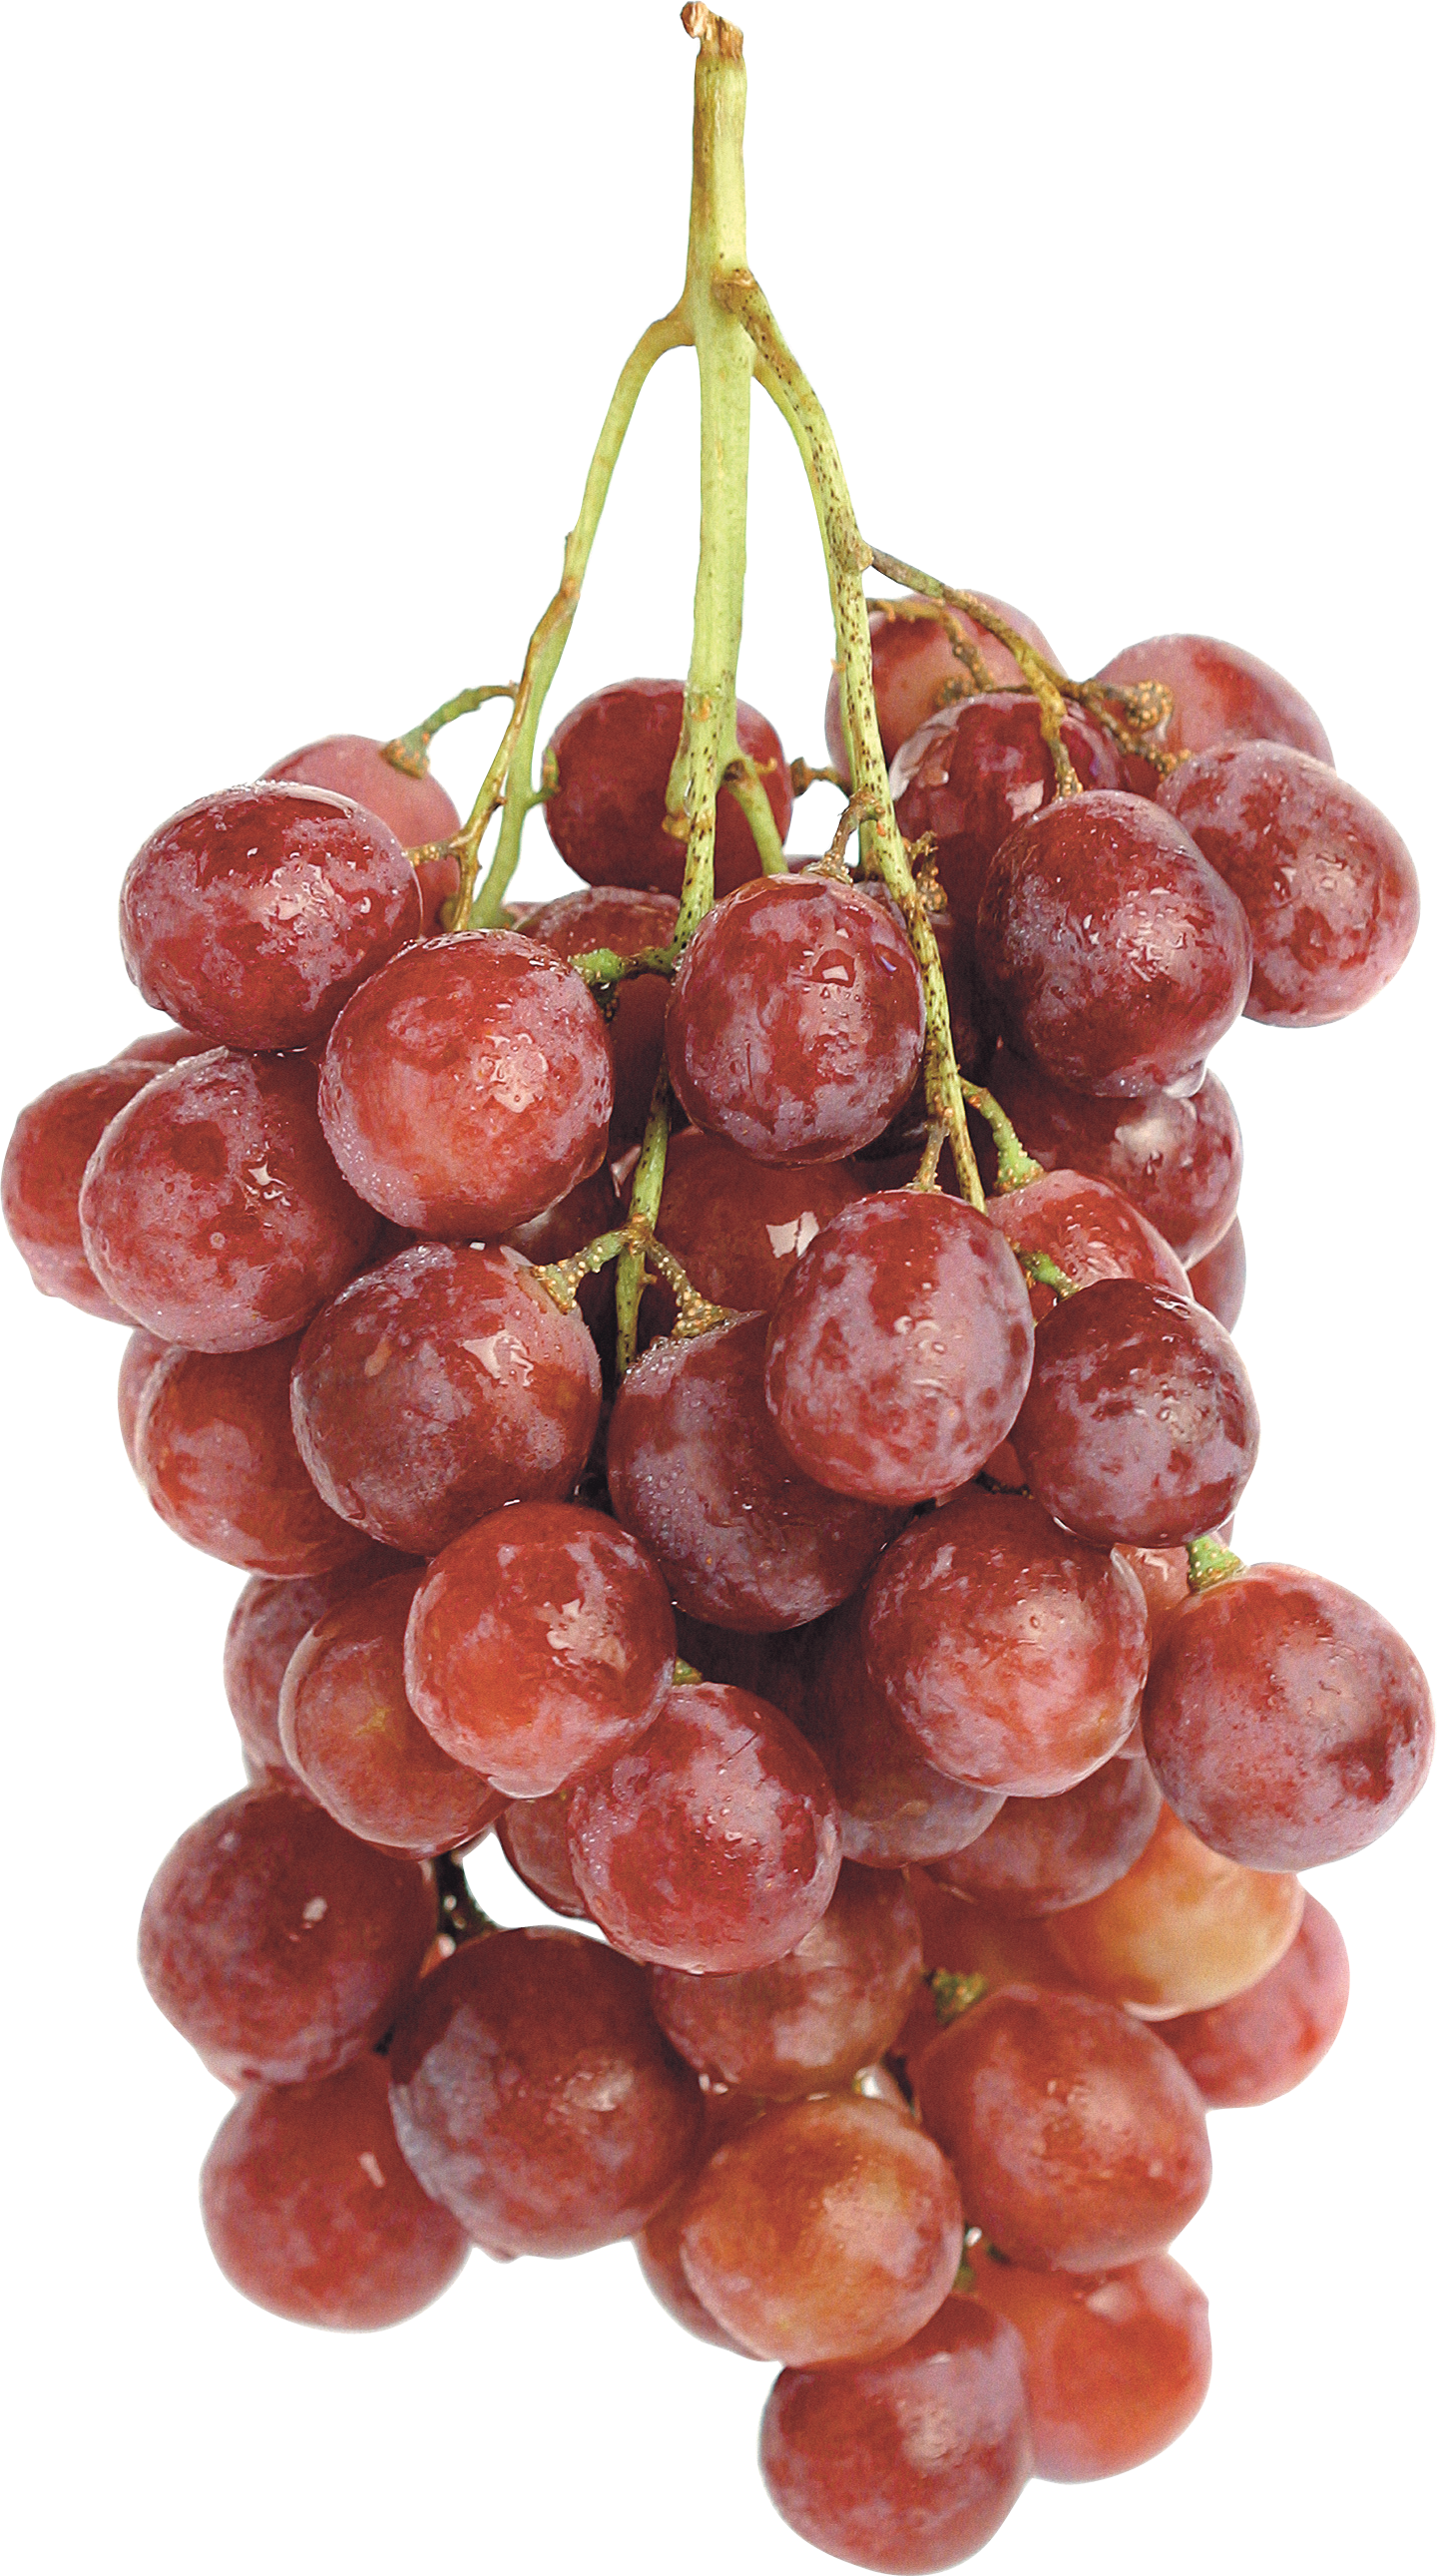 Red png image purepng. Grapes clipart orange